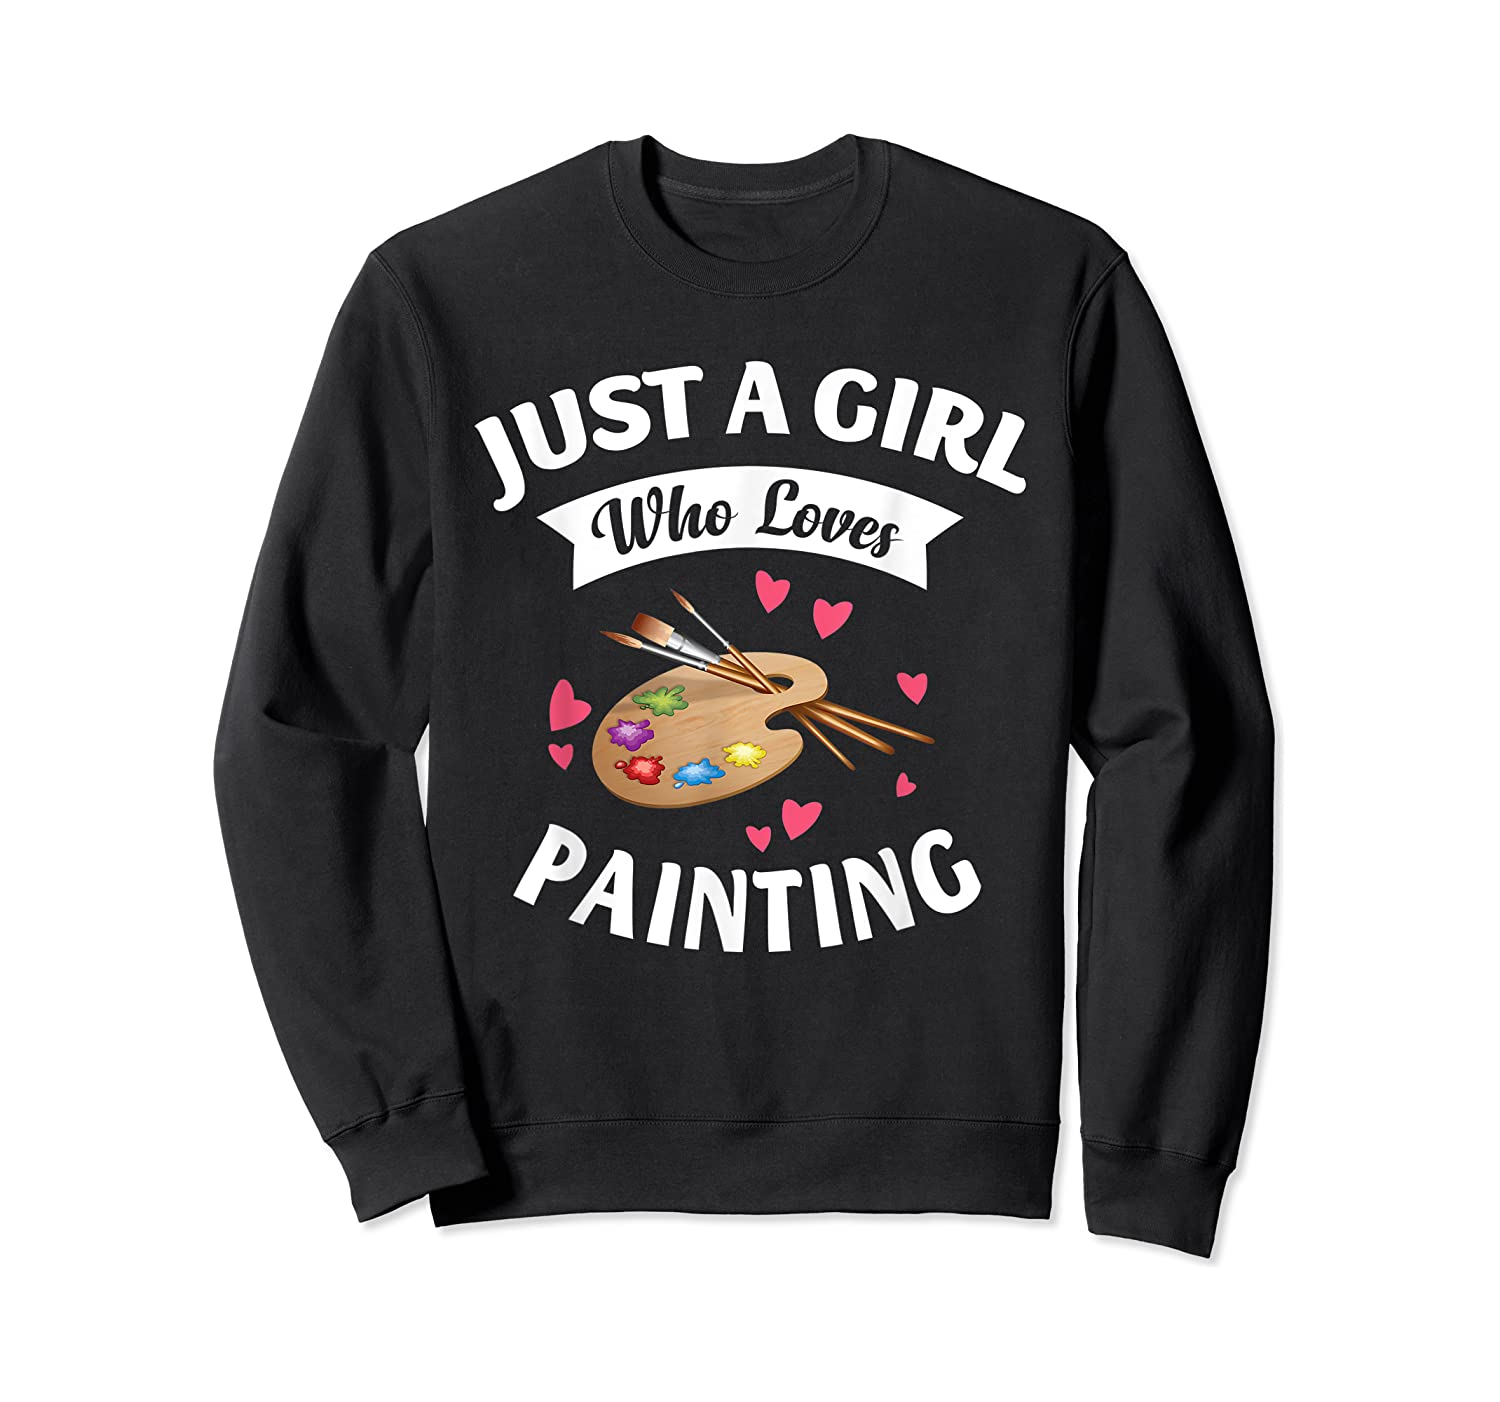 Just A Girl Who Loves Painting, Art Lovers Girls Shirts Crewneck Sweater